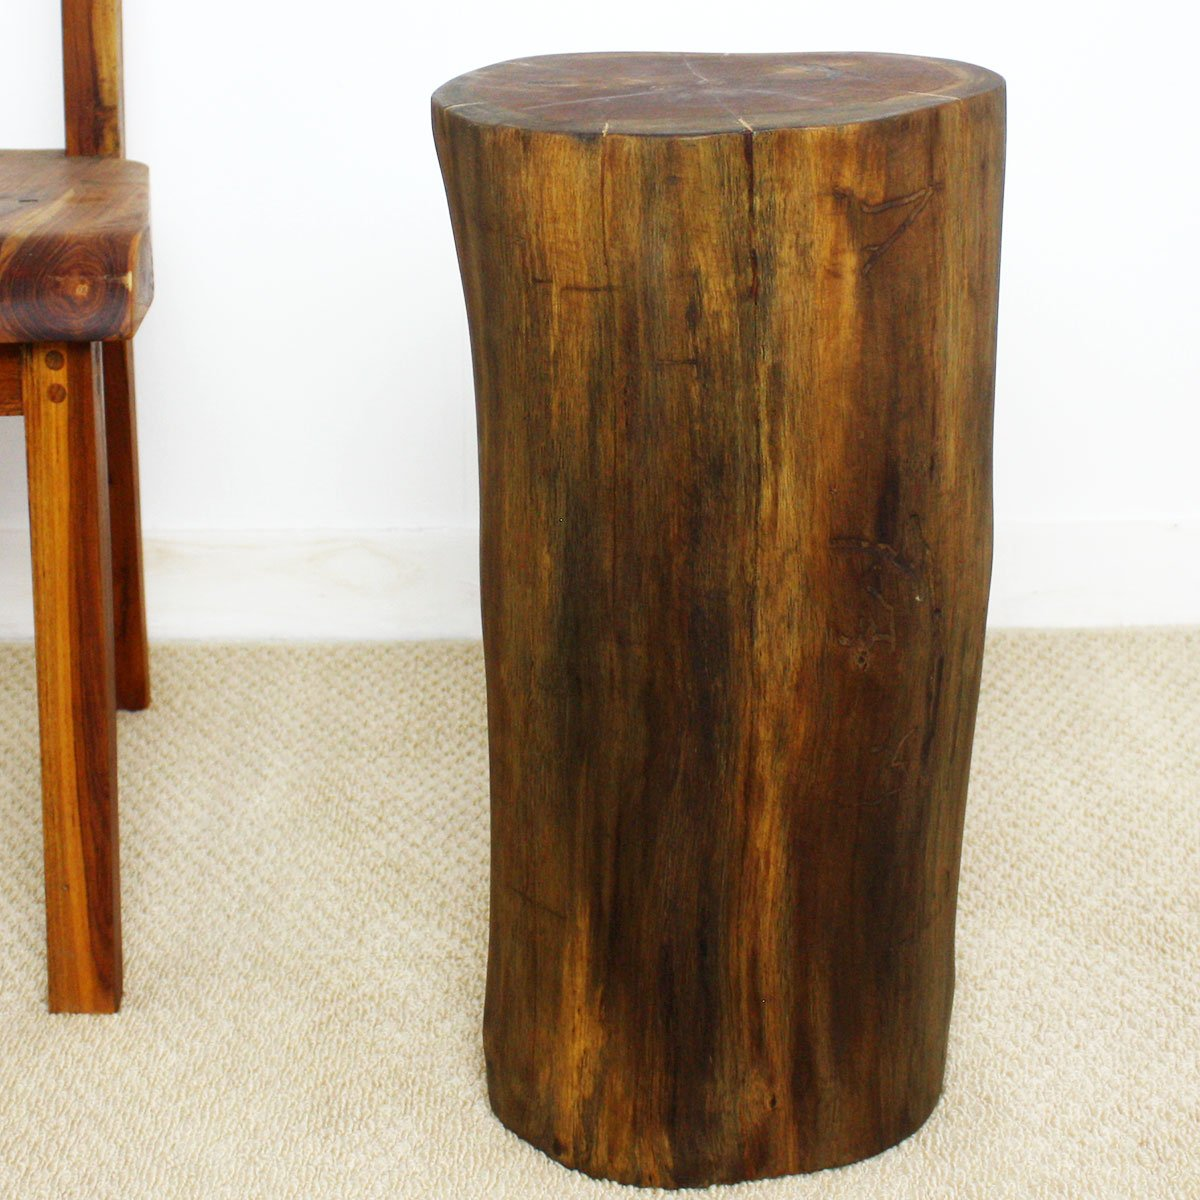 MagJo Teak Reclaimed Stump Style table or stool